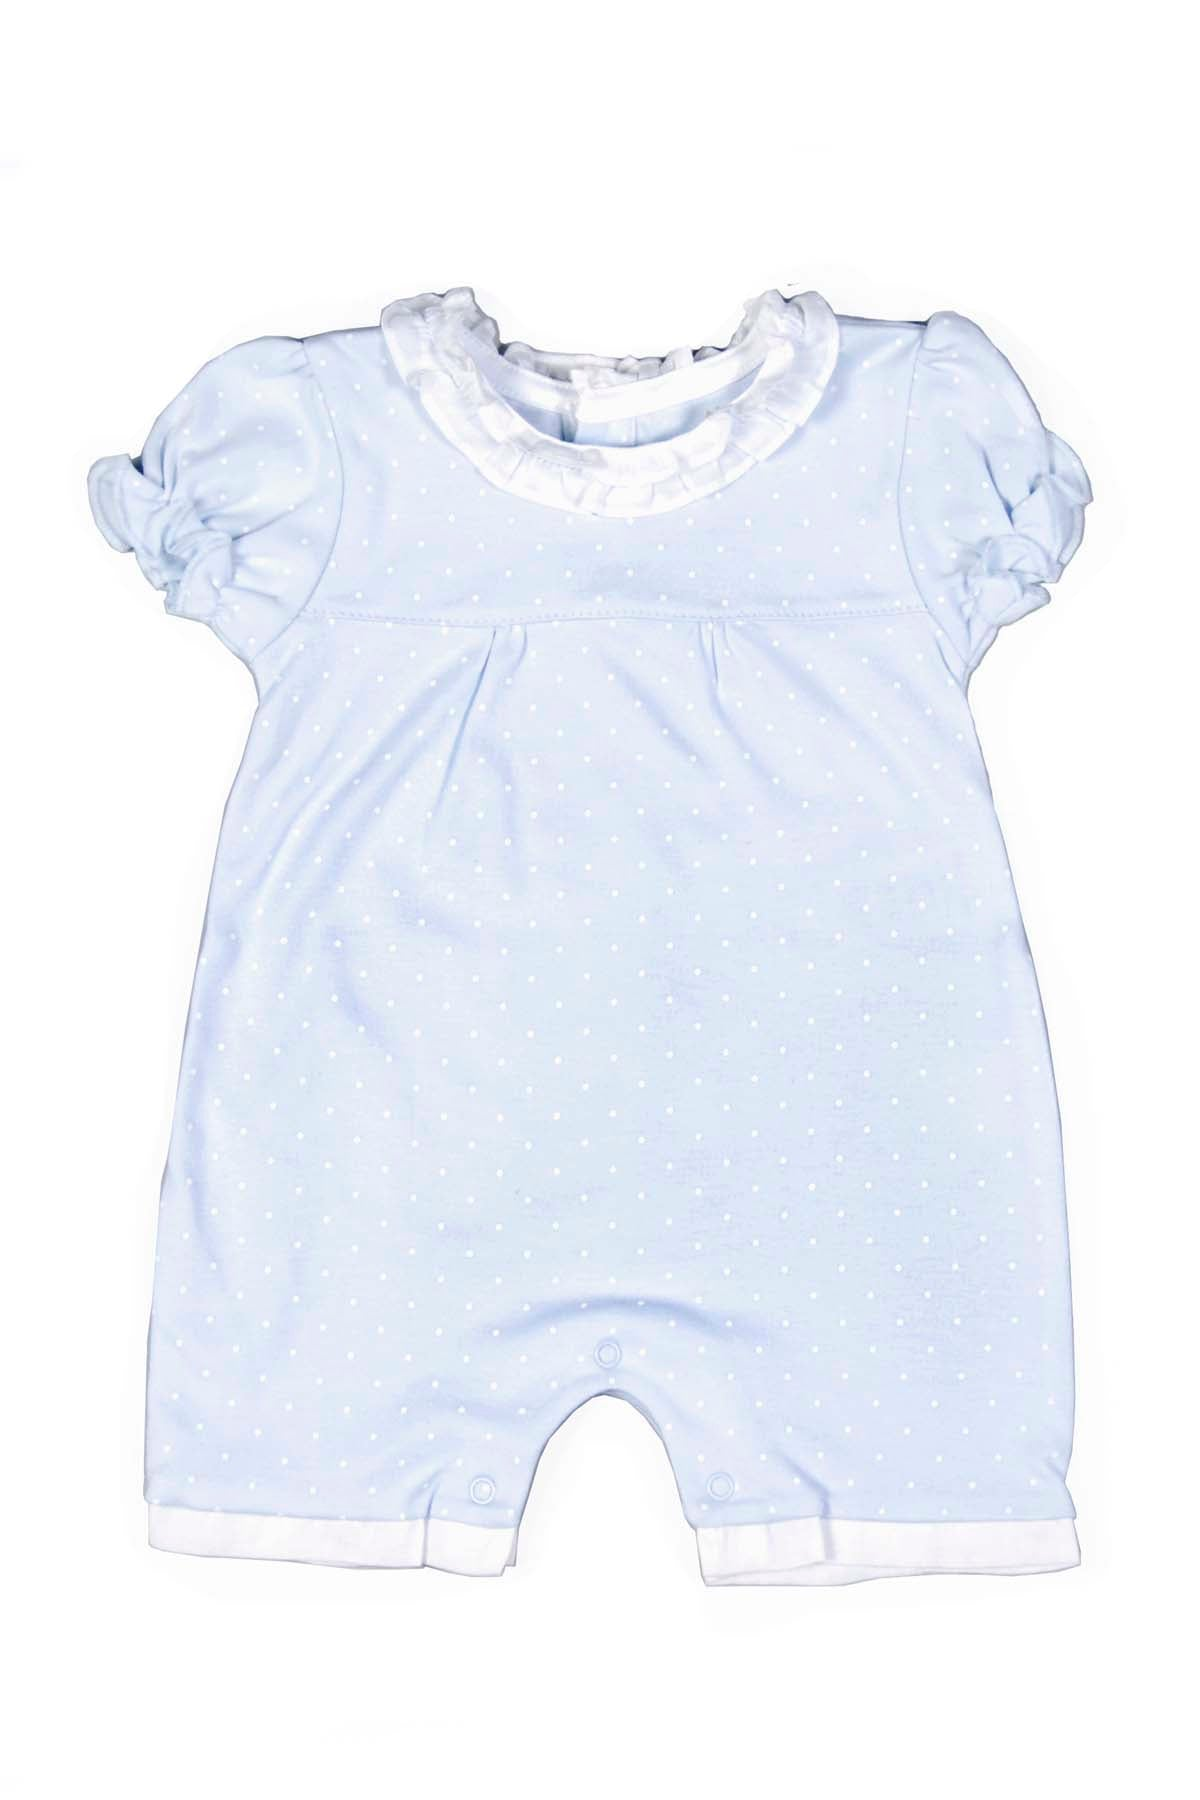 Pima Cotton Light Blue Romper with white dots